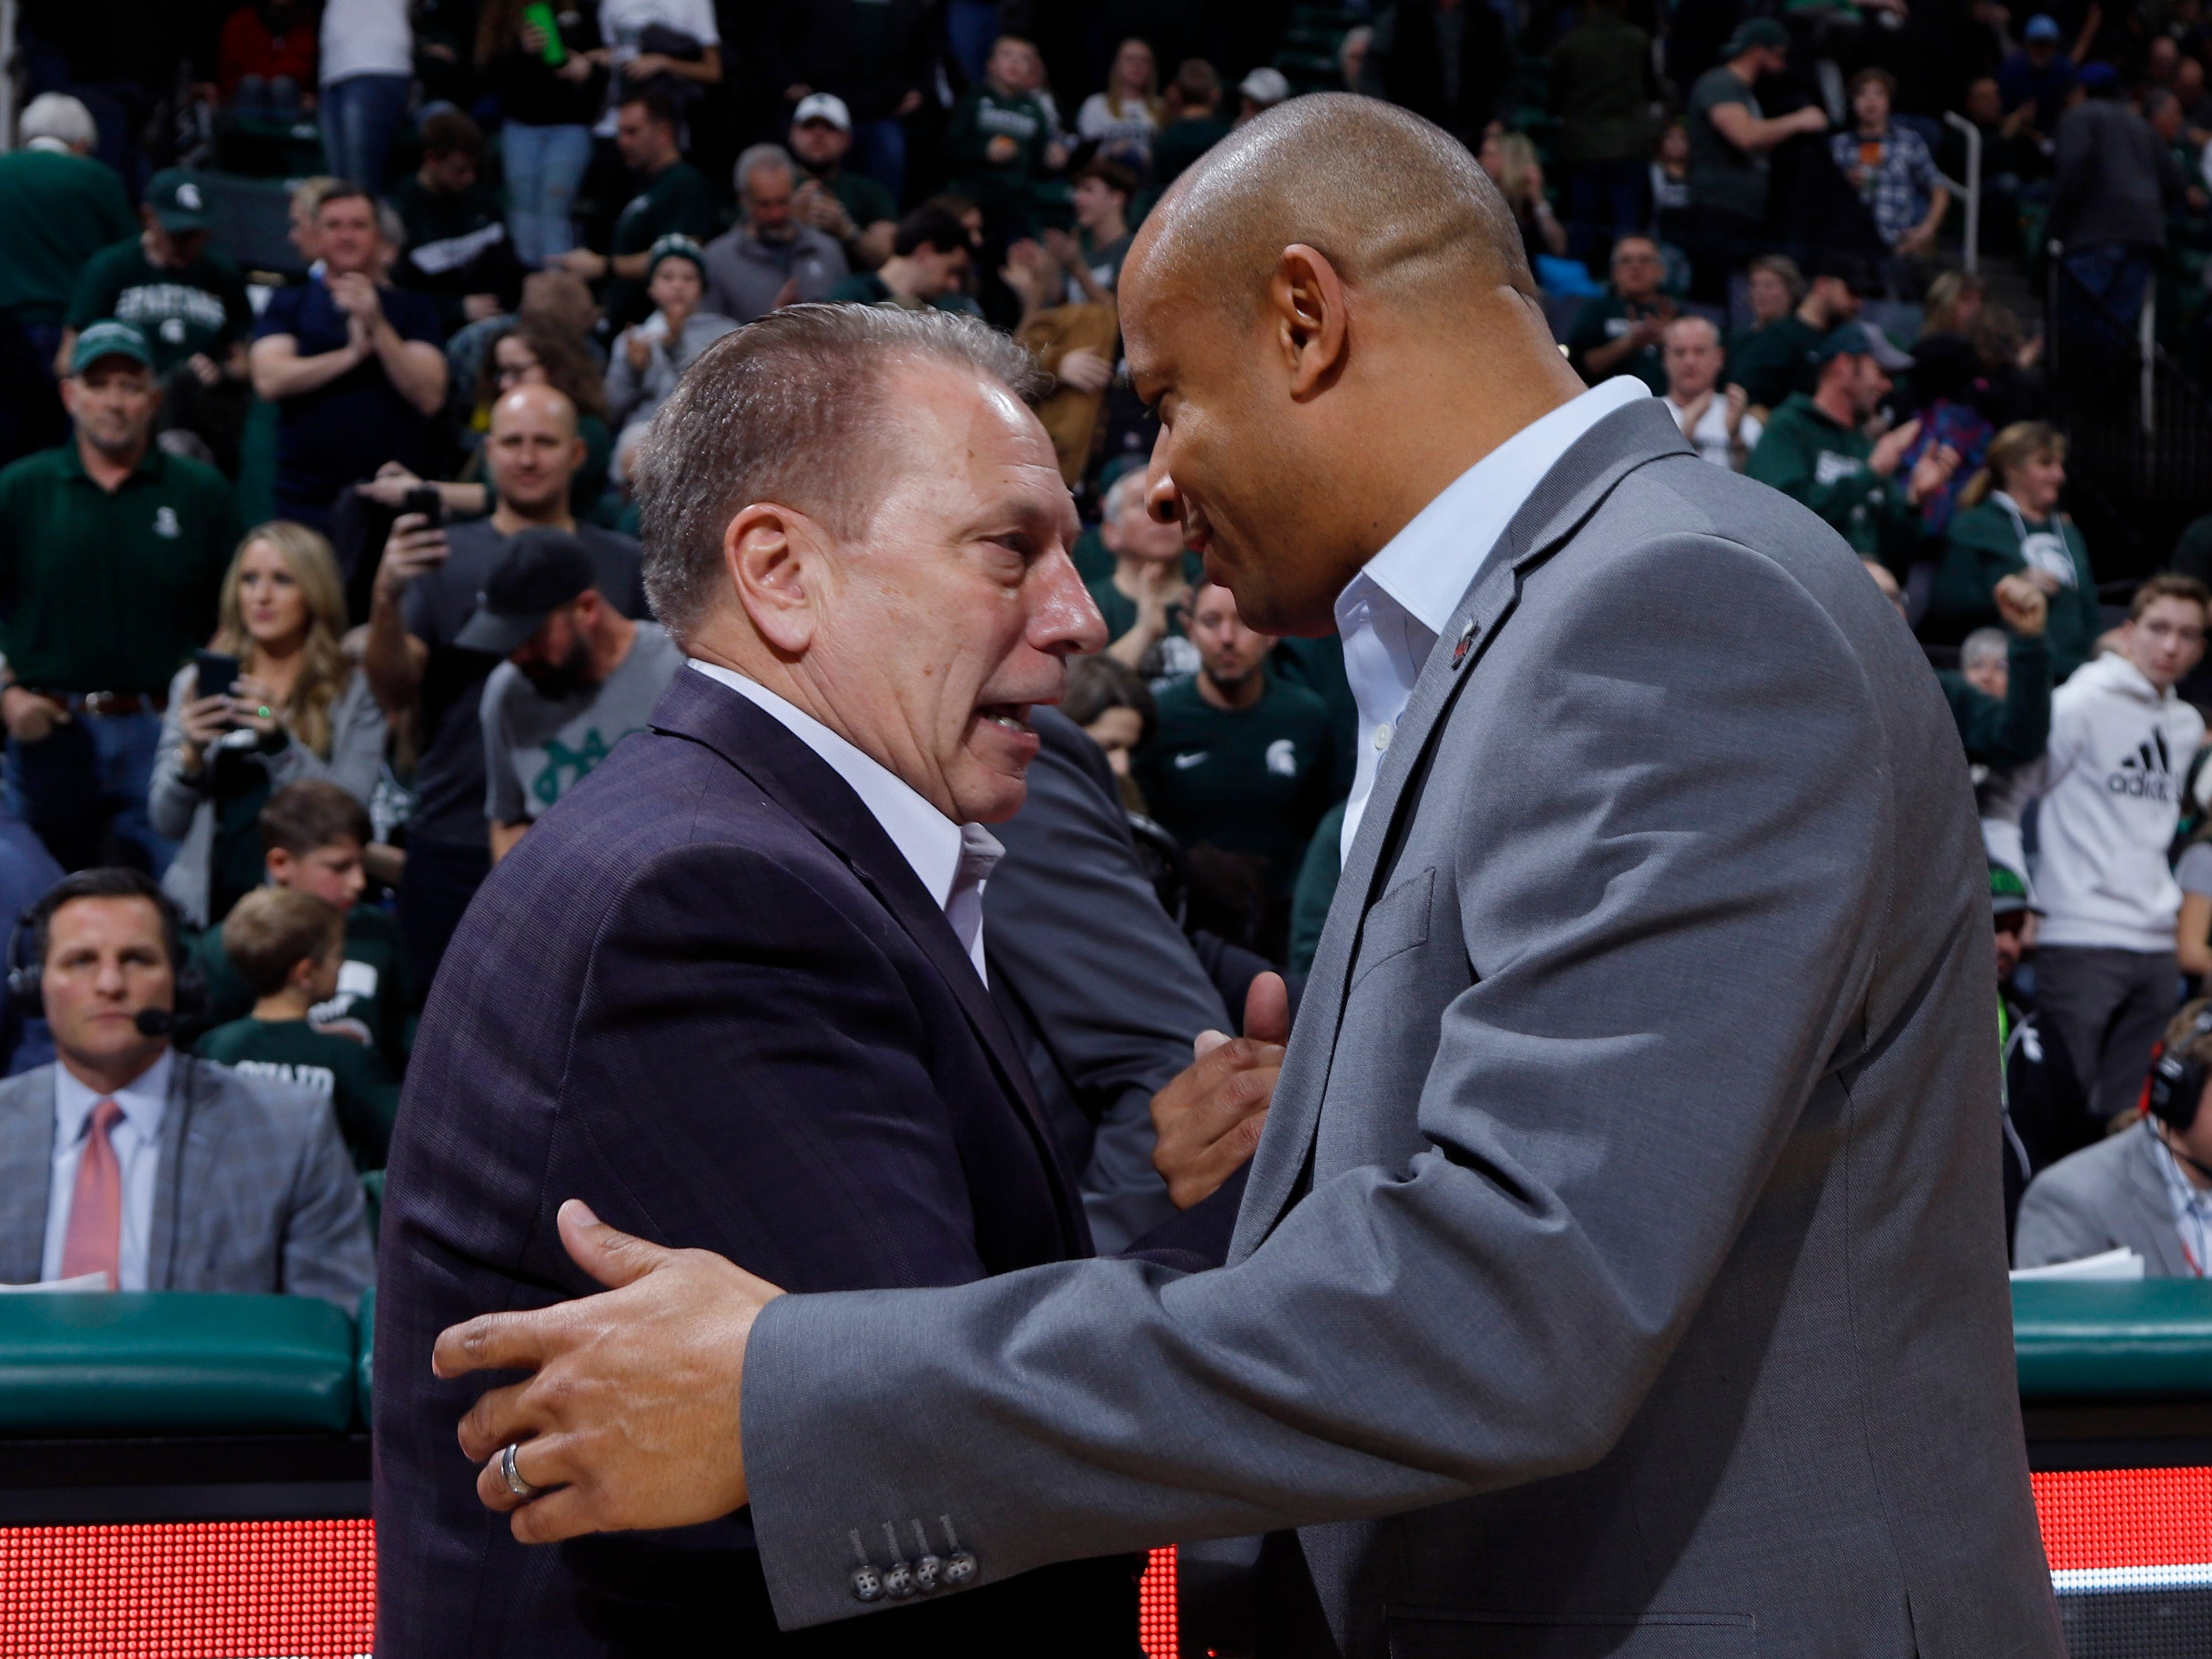 Michigan State coach Tom Izzo, left, and Northern Illinois coach Mark Montgomery, a former Izzo assistant shake hands following their game, Saturday, Dec. 29, 2018, in East Lansing, Mich.